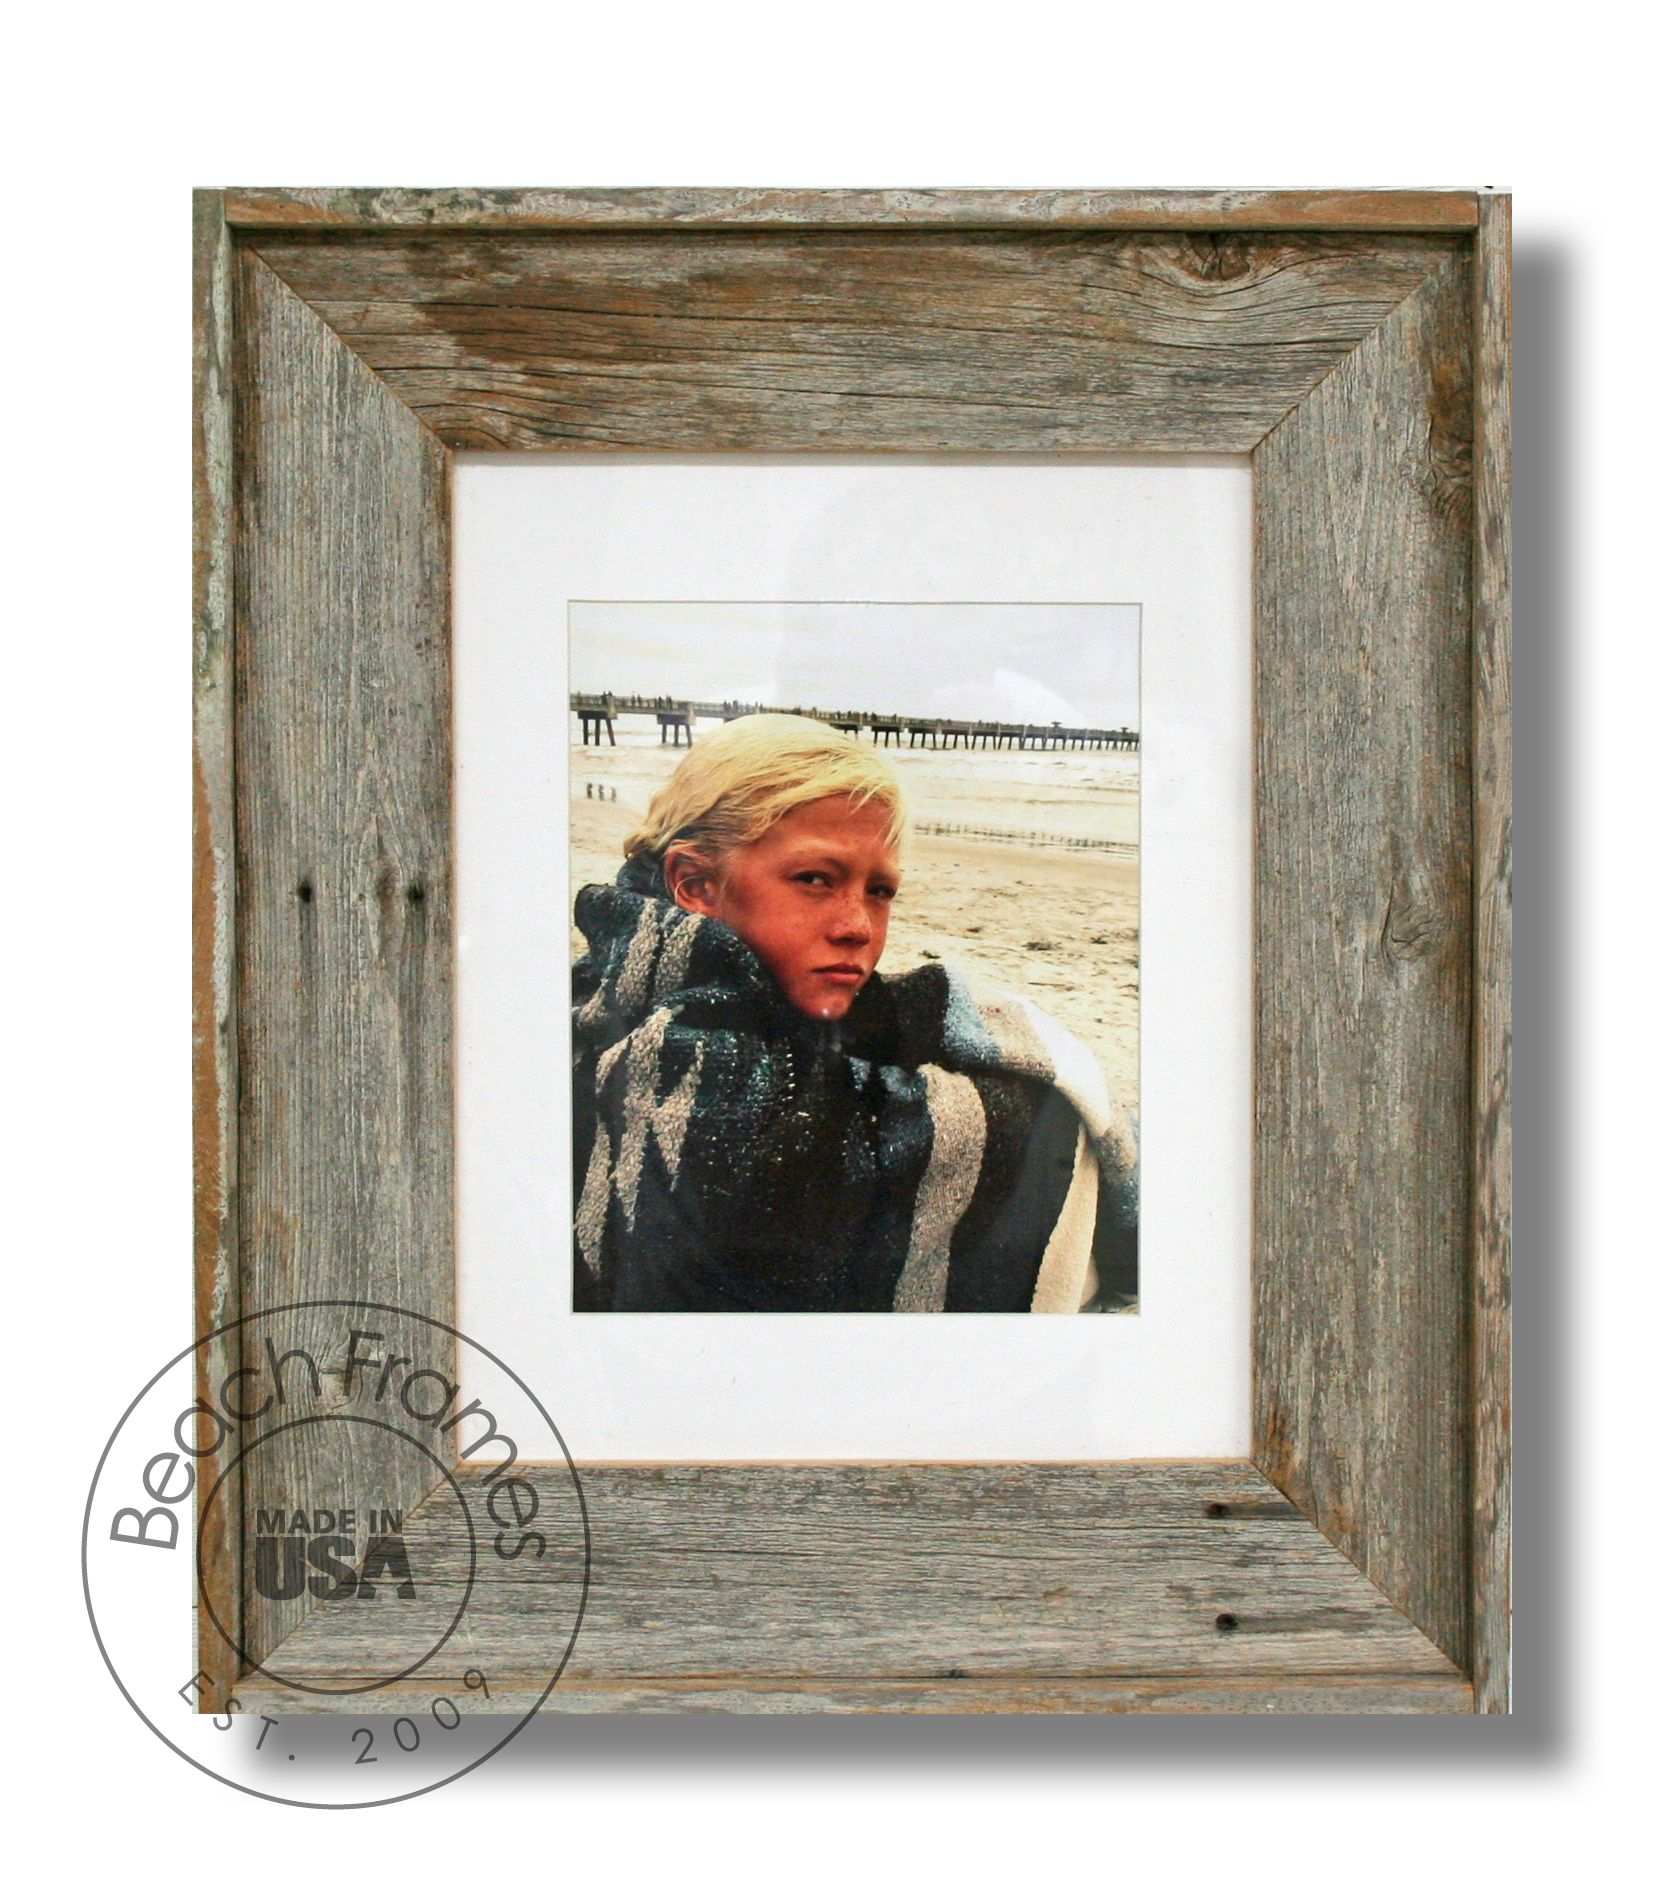 8 x 10 weathered reclaimed cypress wood picture frame with matting and plexiglass.  Hangs both ways.  Not made from dingy pallet wood.  Made in the USA. Visit www.BeachFrames.com